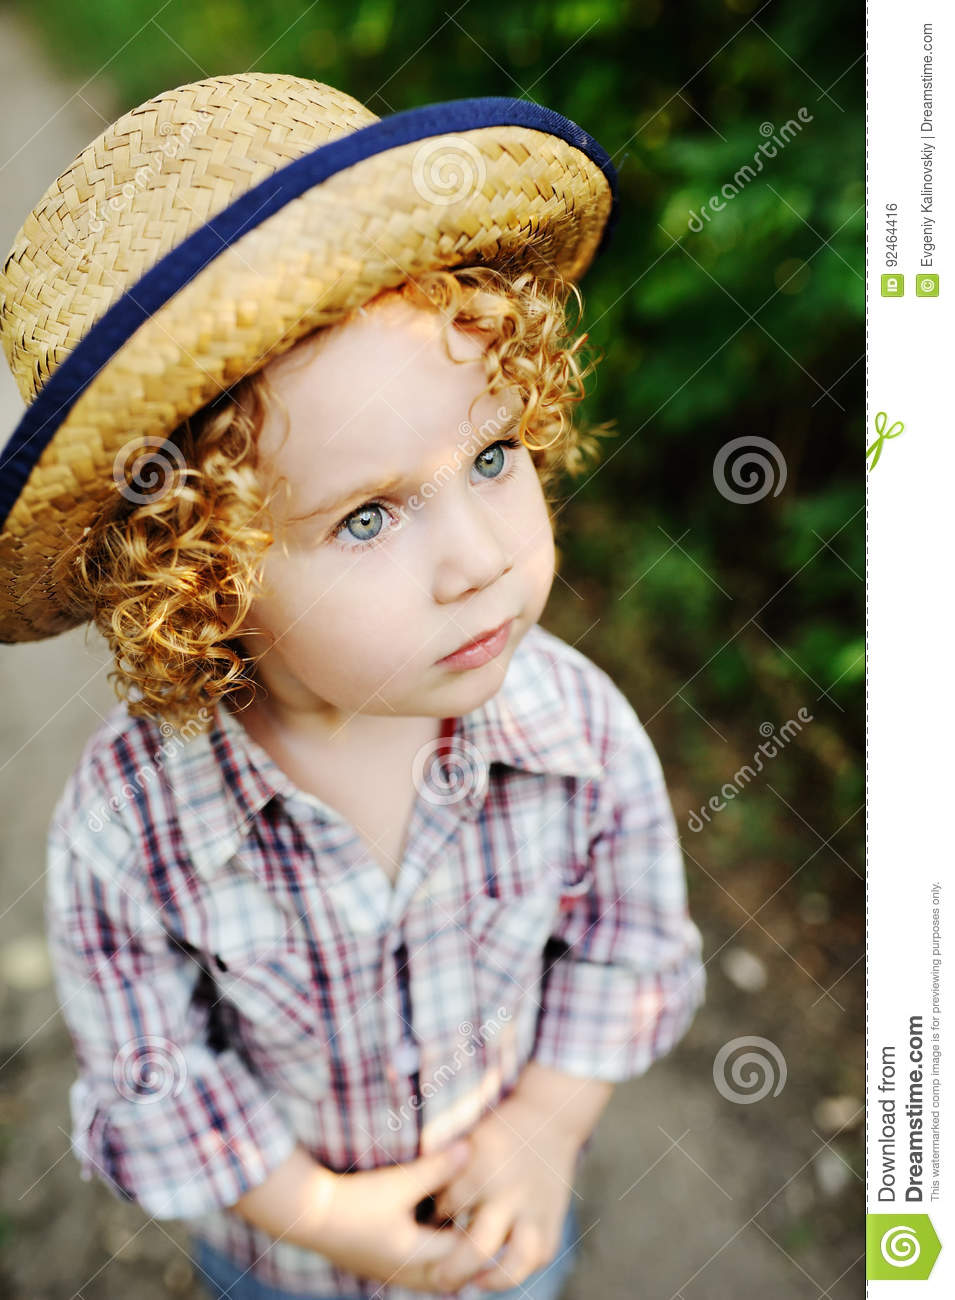 e3801ef96 Portrait Of Curly Red-haired Baby In A Hat. Stock Photo - Image of ...